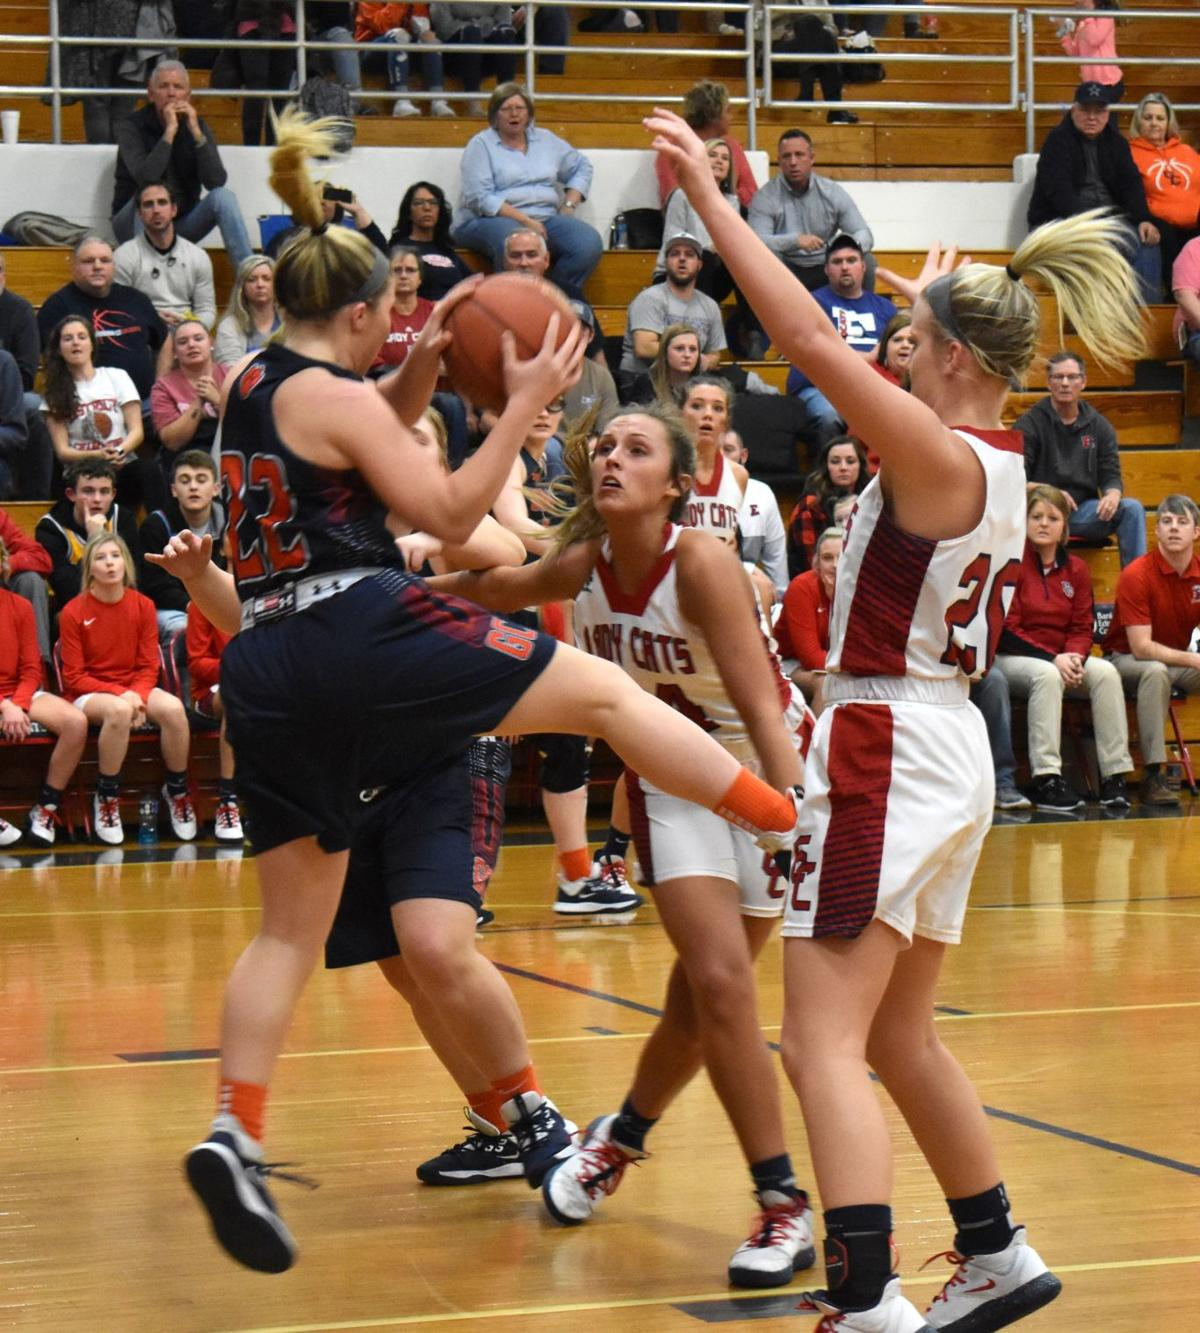 Lady Cougars take tough loss on the road 2